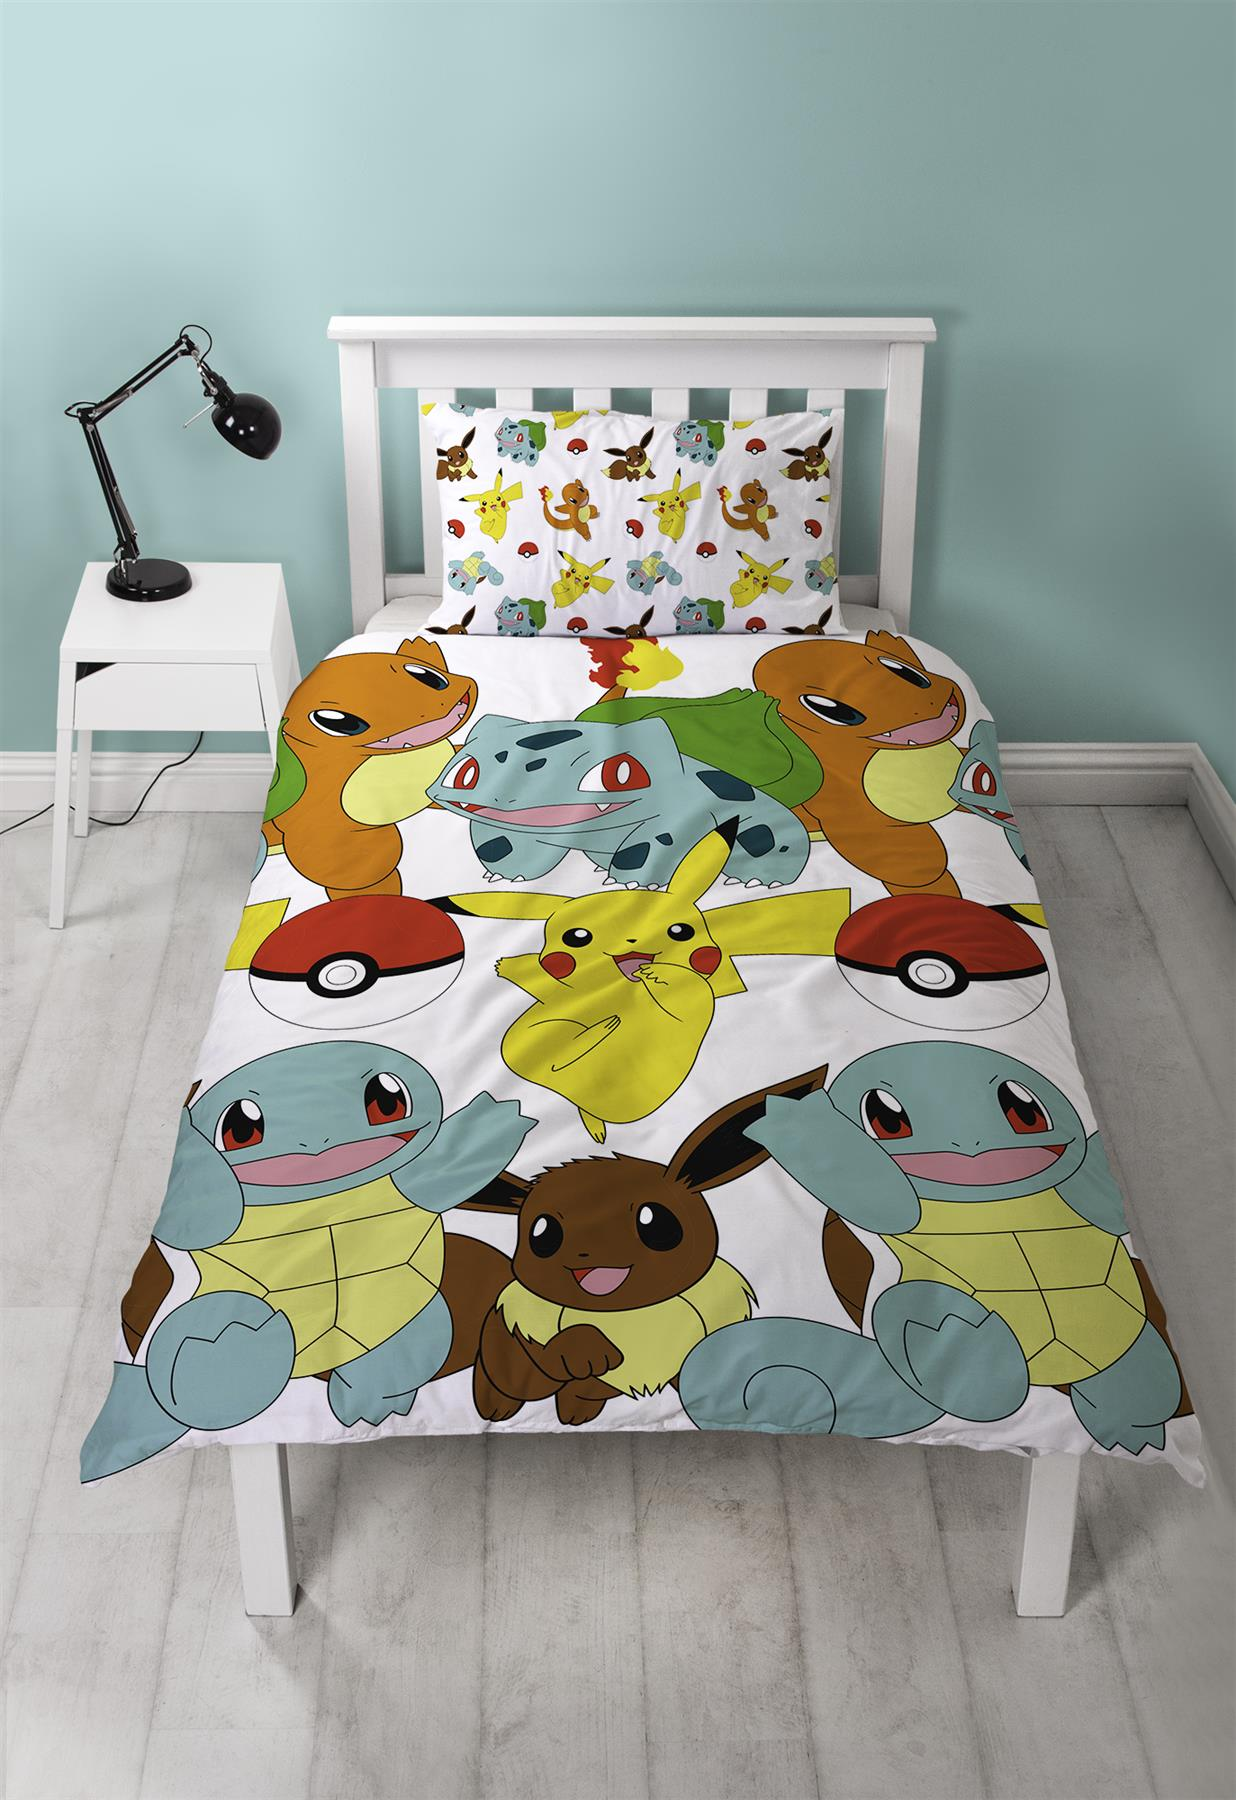 Official-Pokemon-Licensed-Duvet-Covers-Single-Double-Pikachu-Bedding-Gaming thumbnail 40